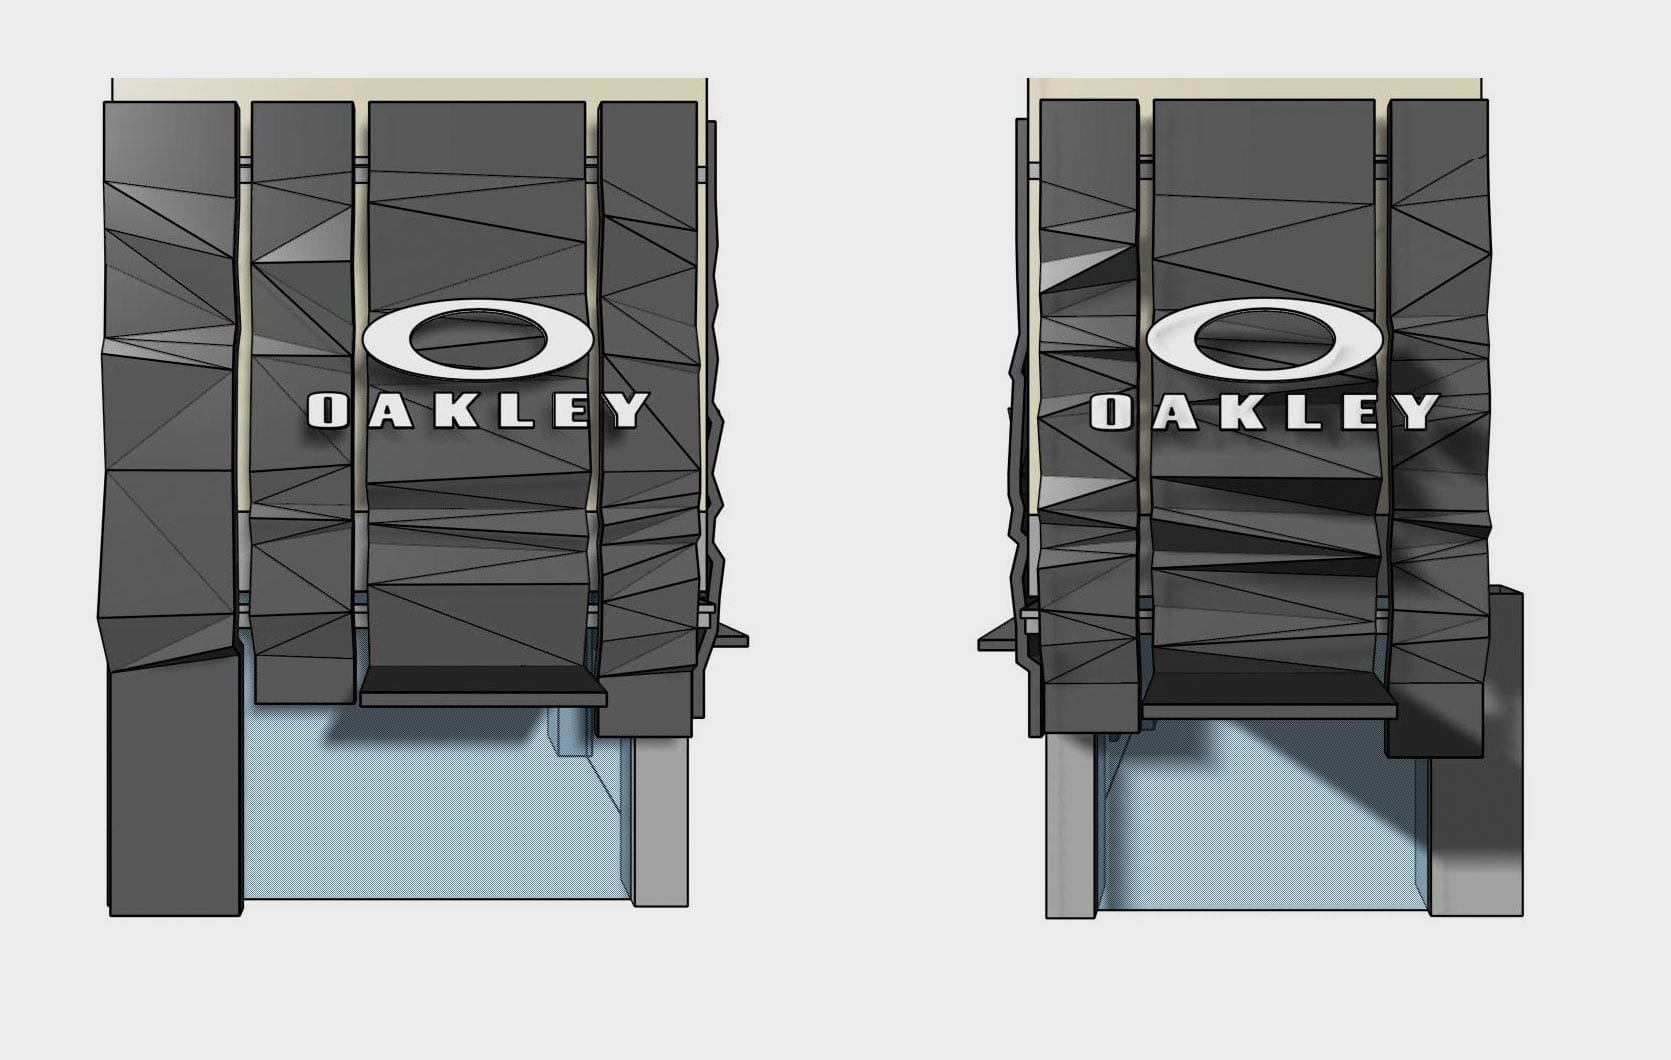 Architect's renderings of the Oakley Facade for Fifth Avenue Flagship.